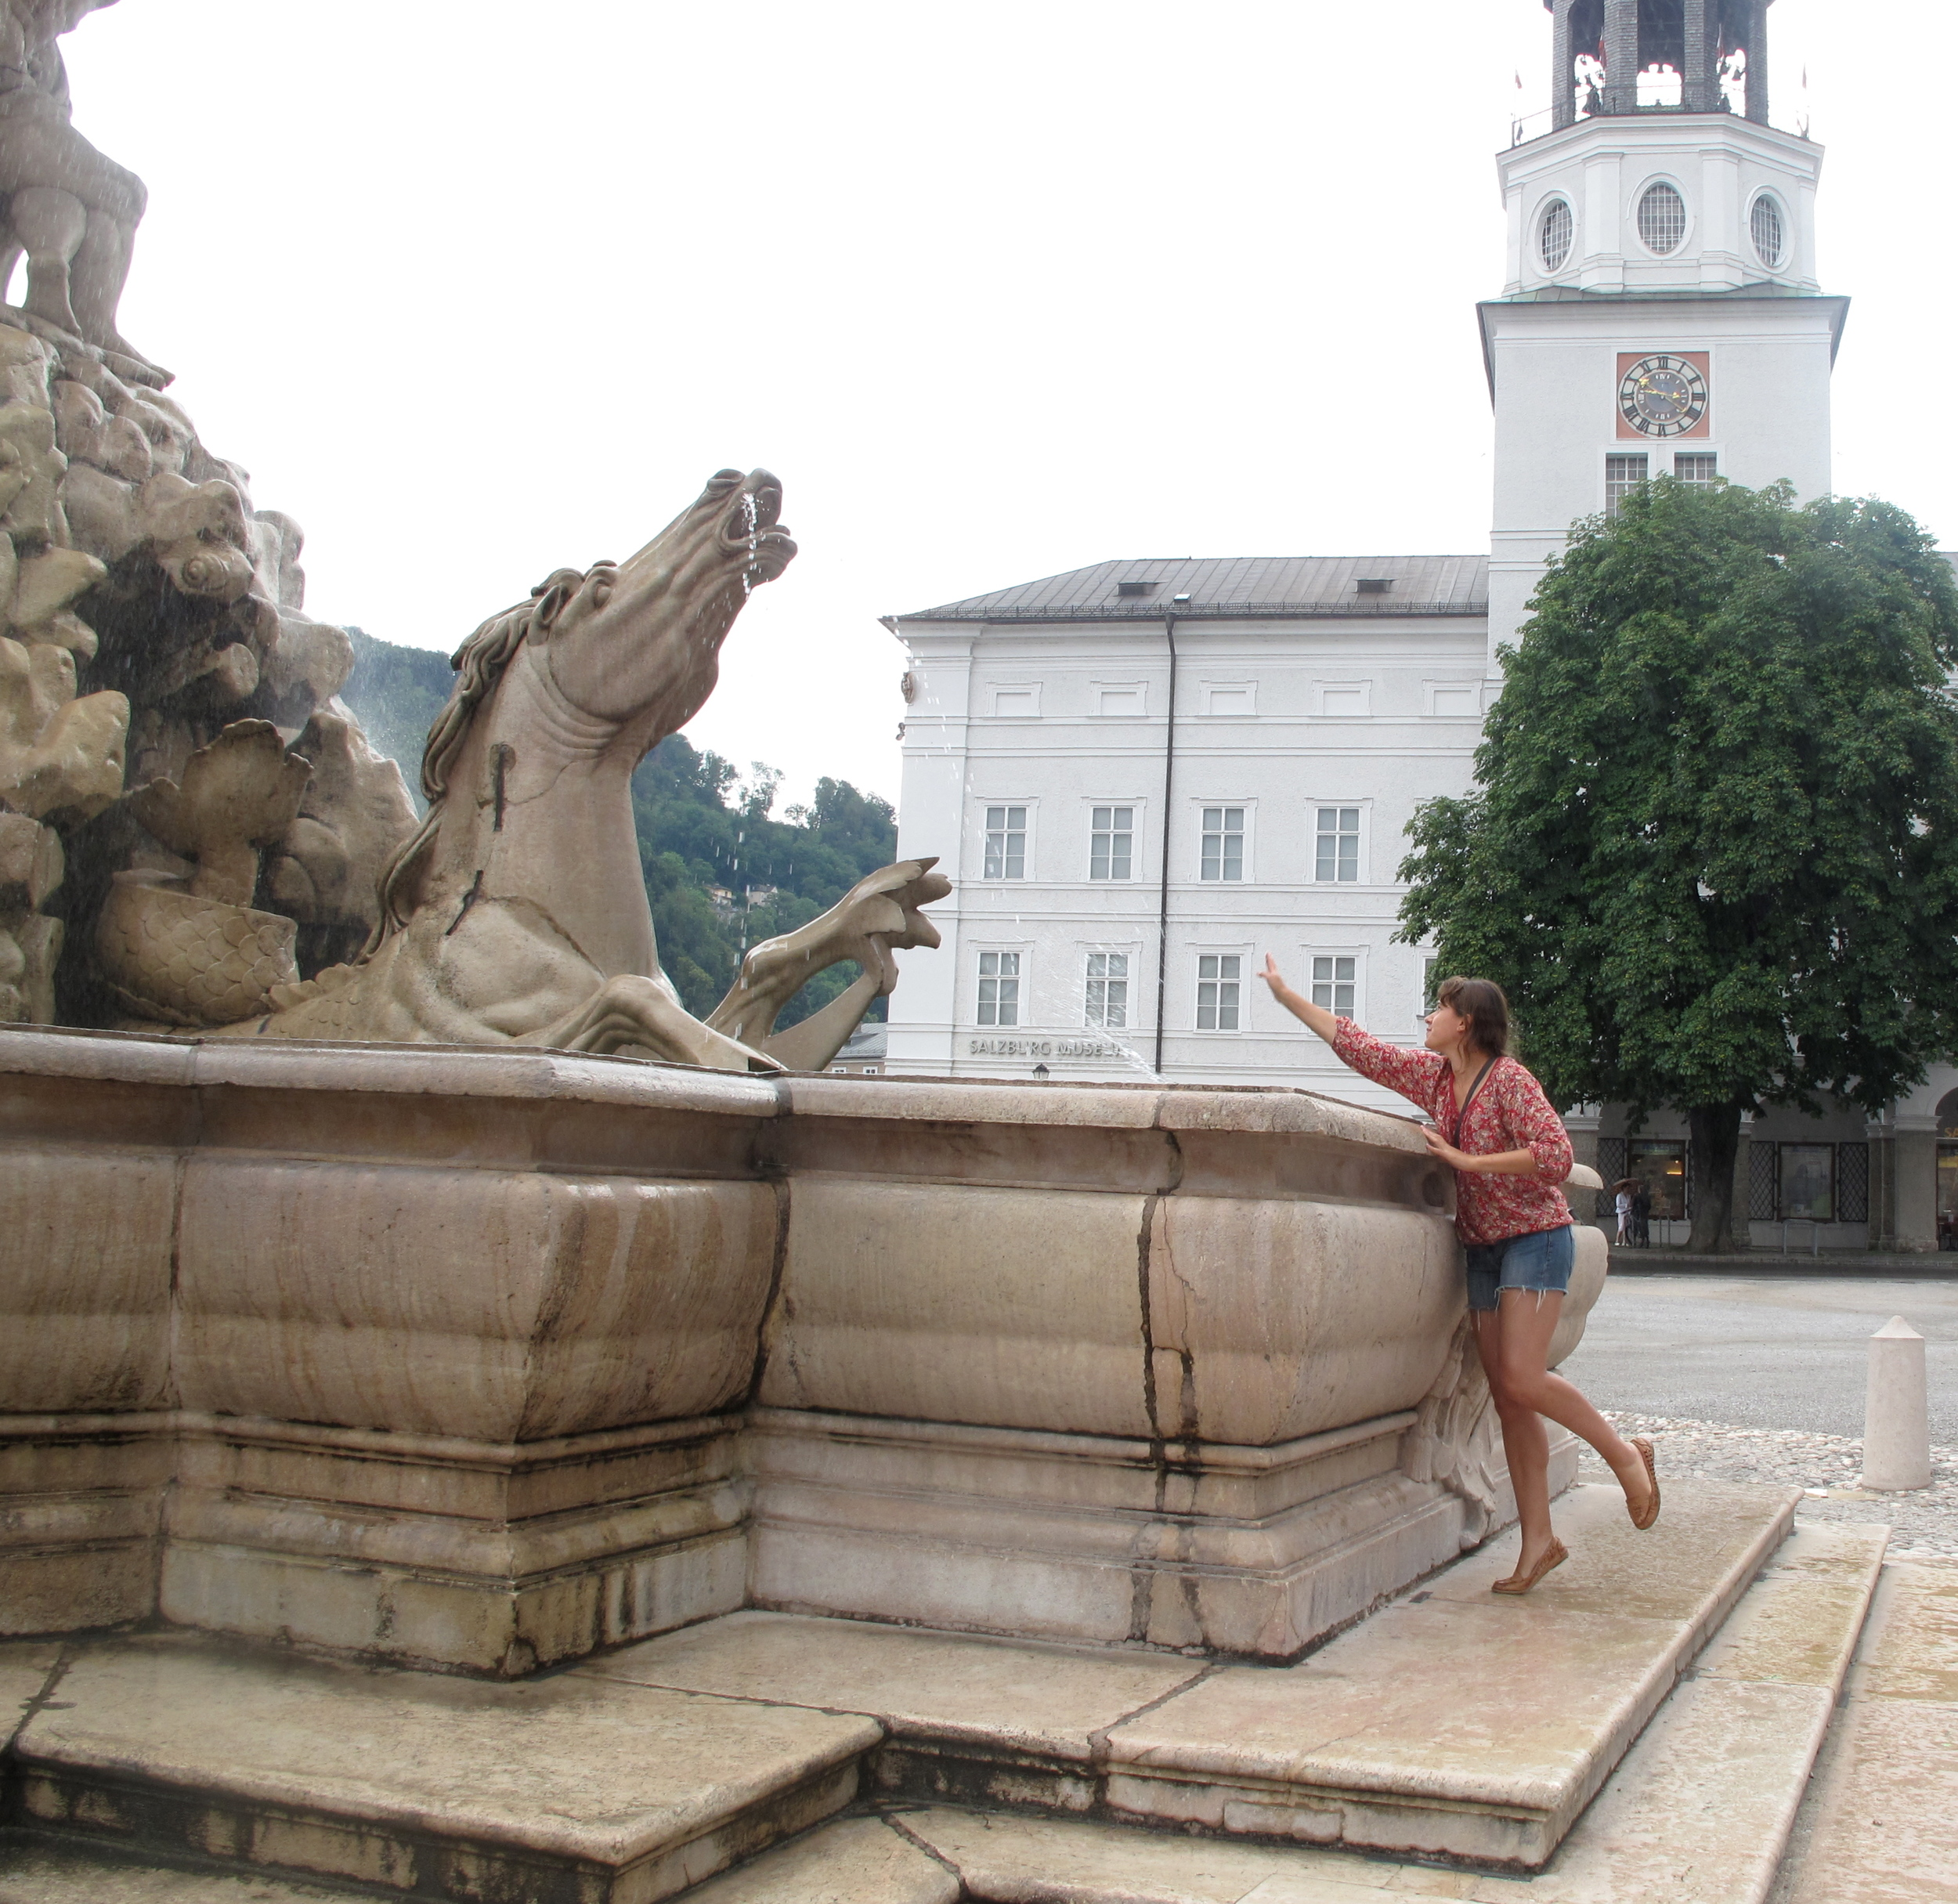 Fountain from the Sound of Music.